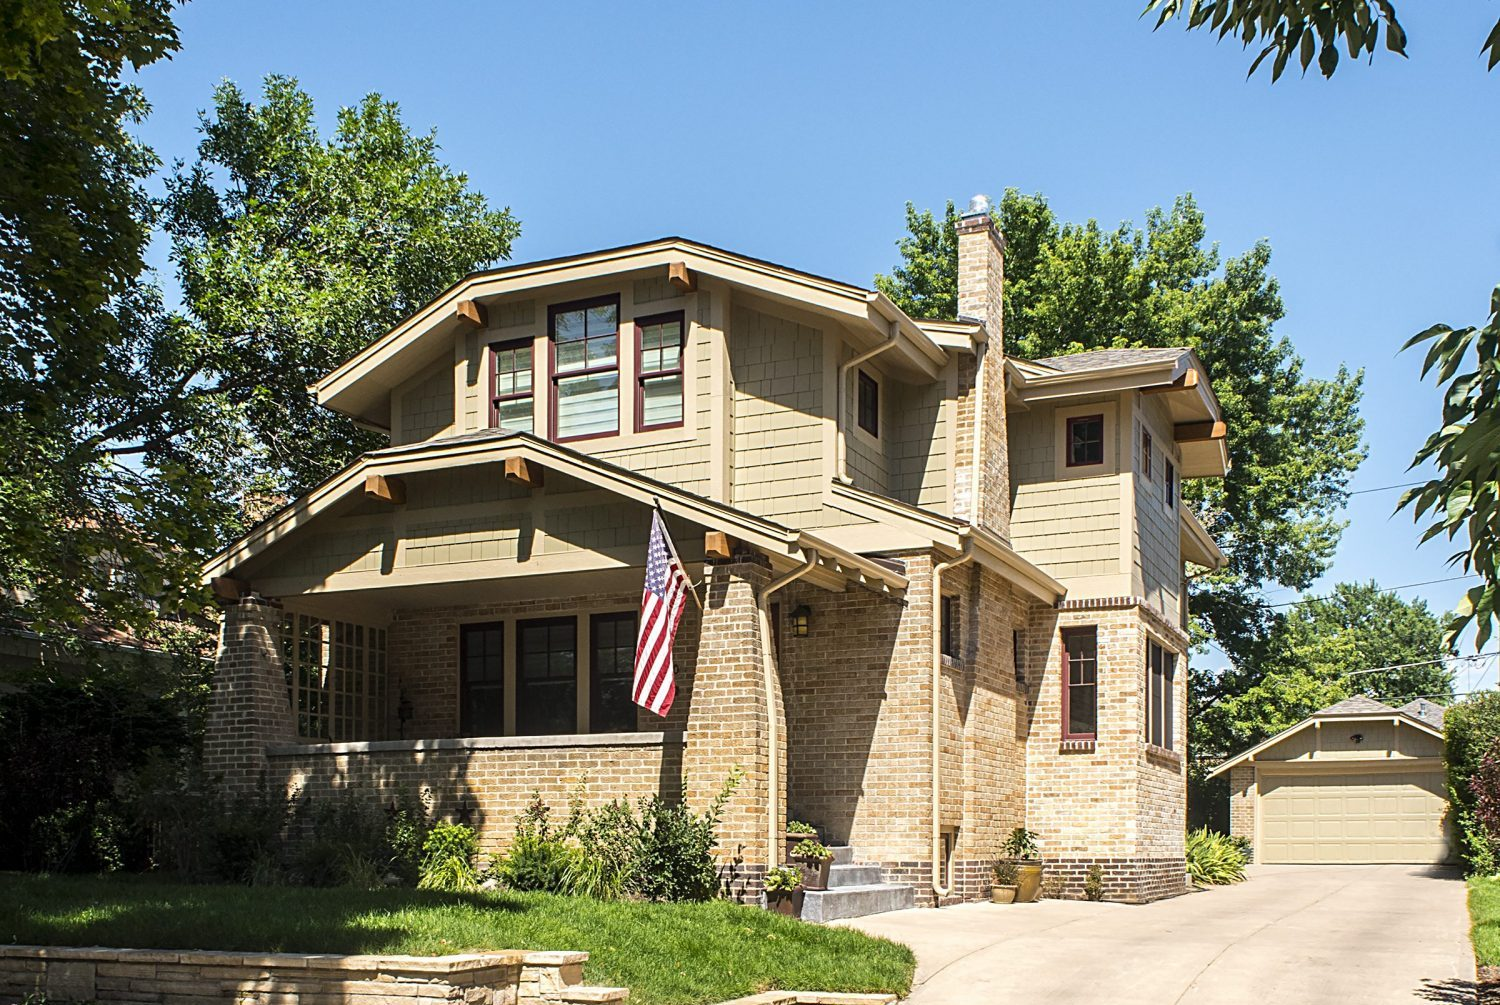 Classic Denver Craftsman Bungalow Remodel with Brick